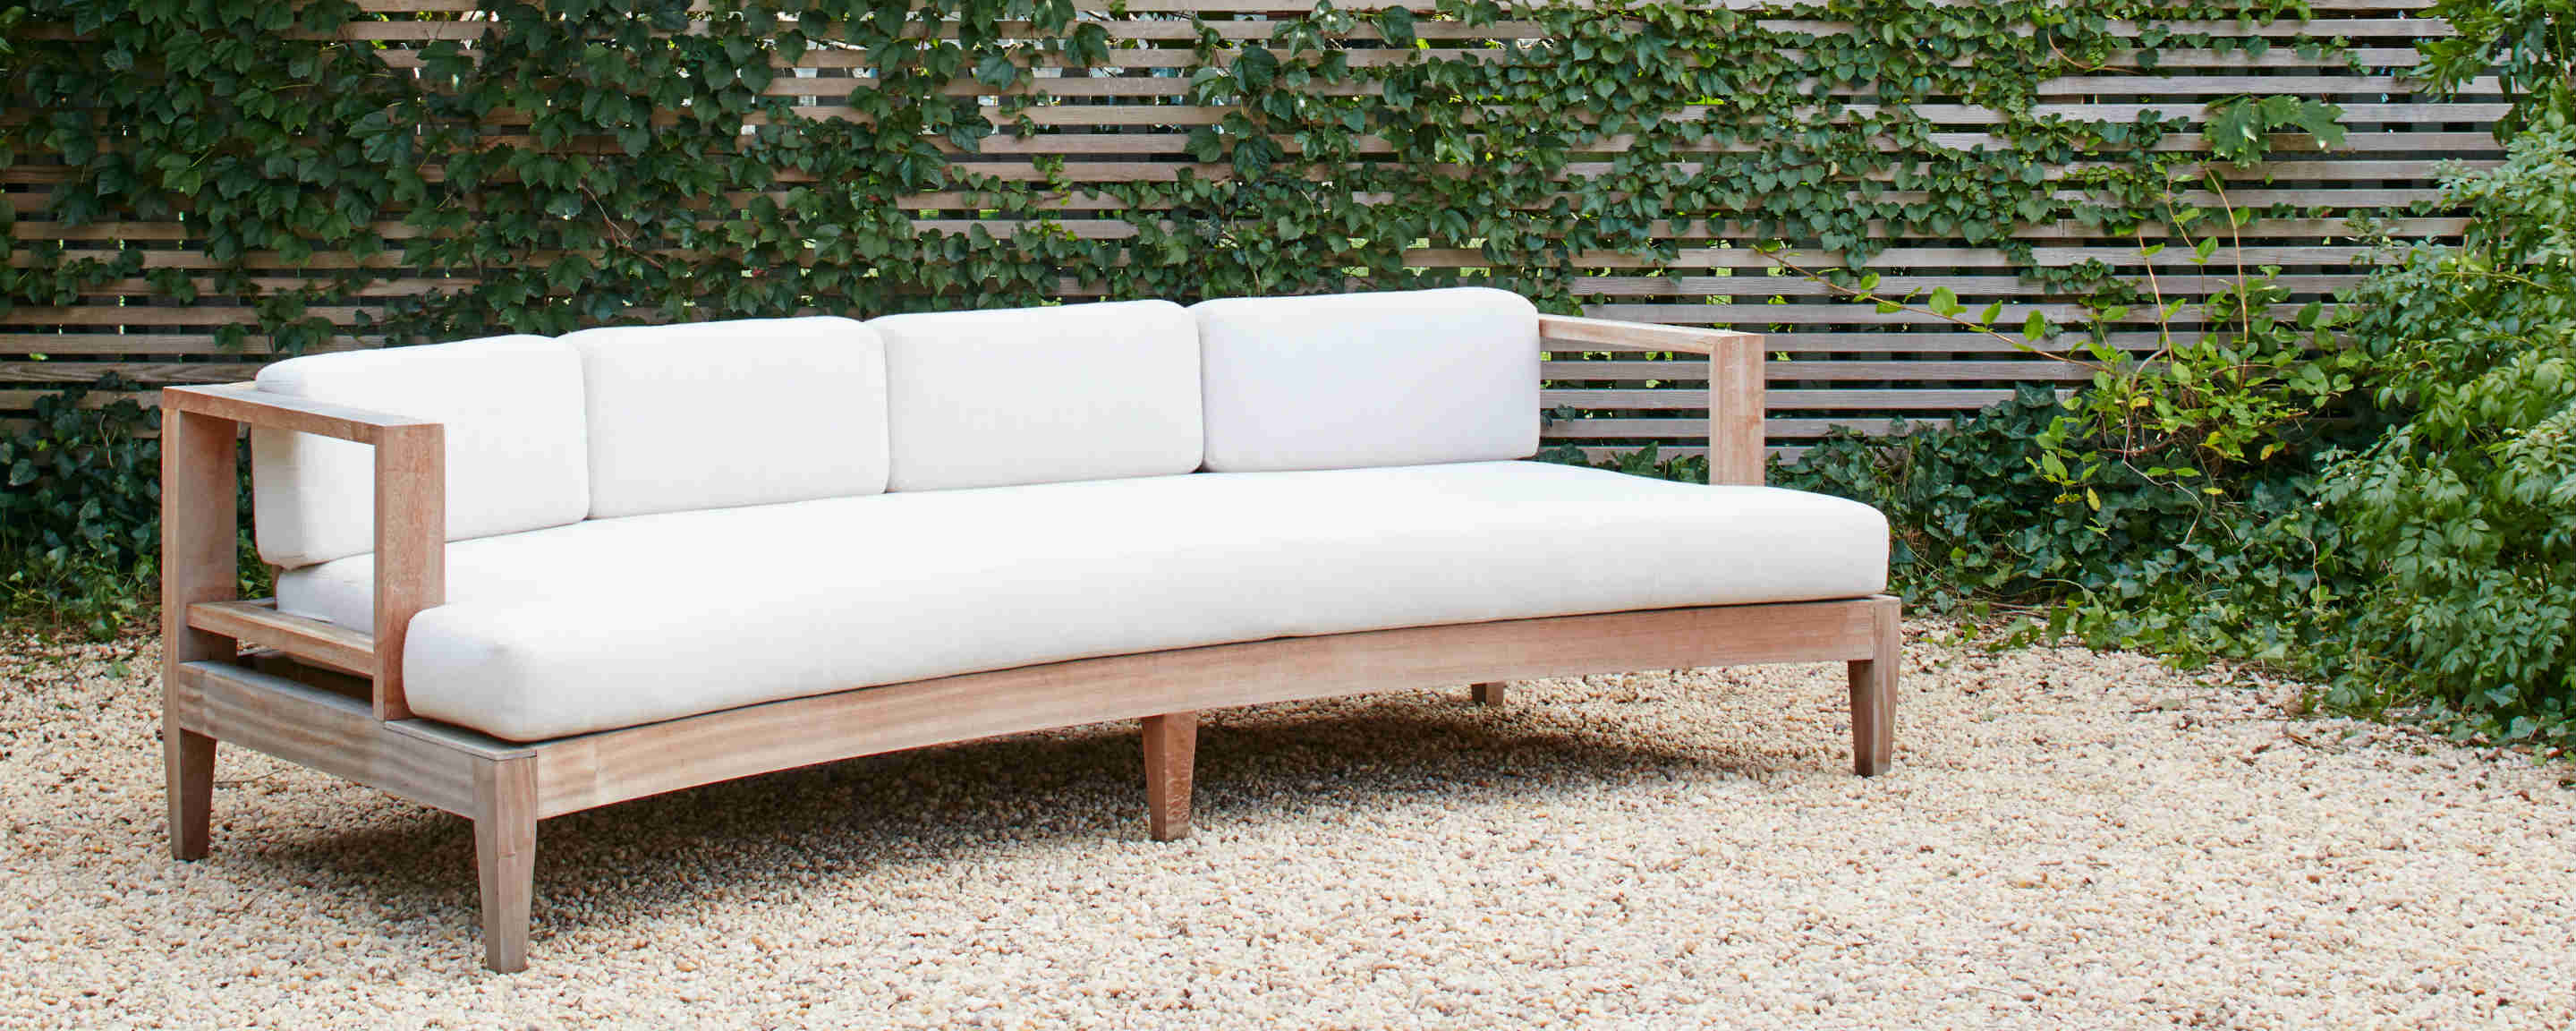 sapele wood outdoor curved sofa